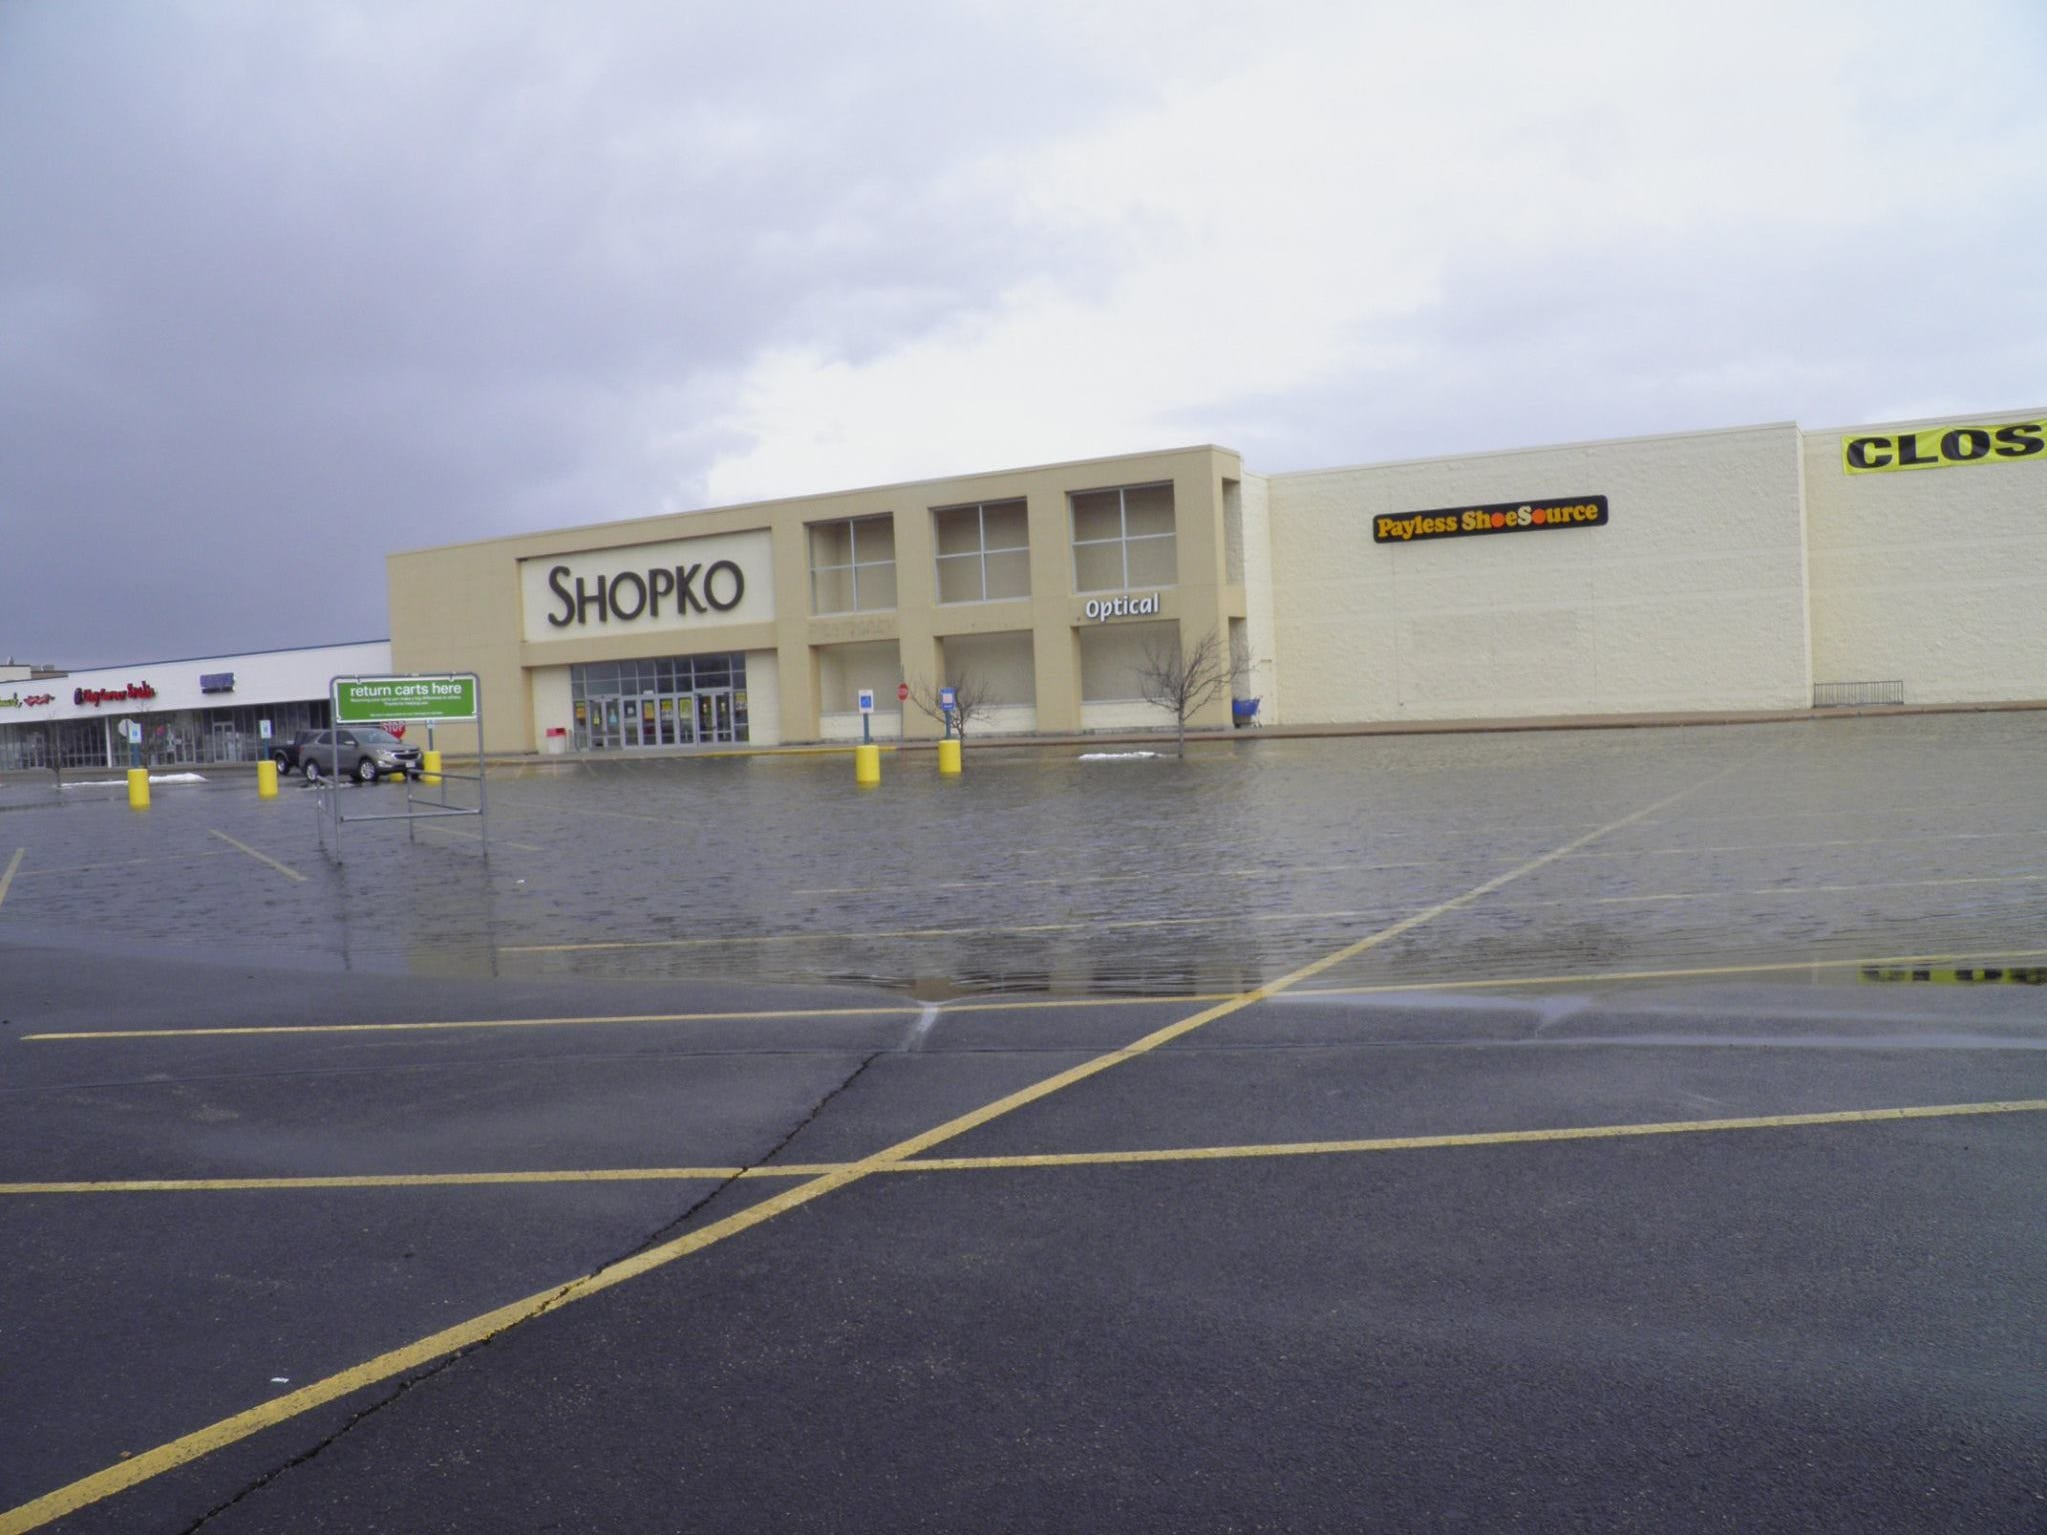 Water floods the parking lot of the Shopko in Plover on Friday, March 15, 2019.